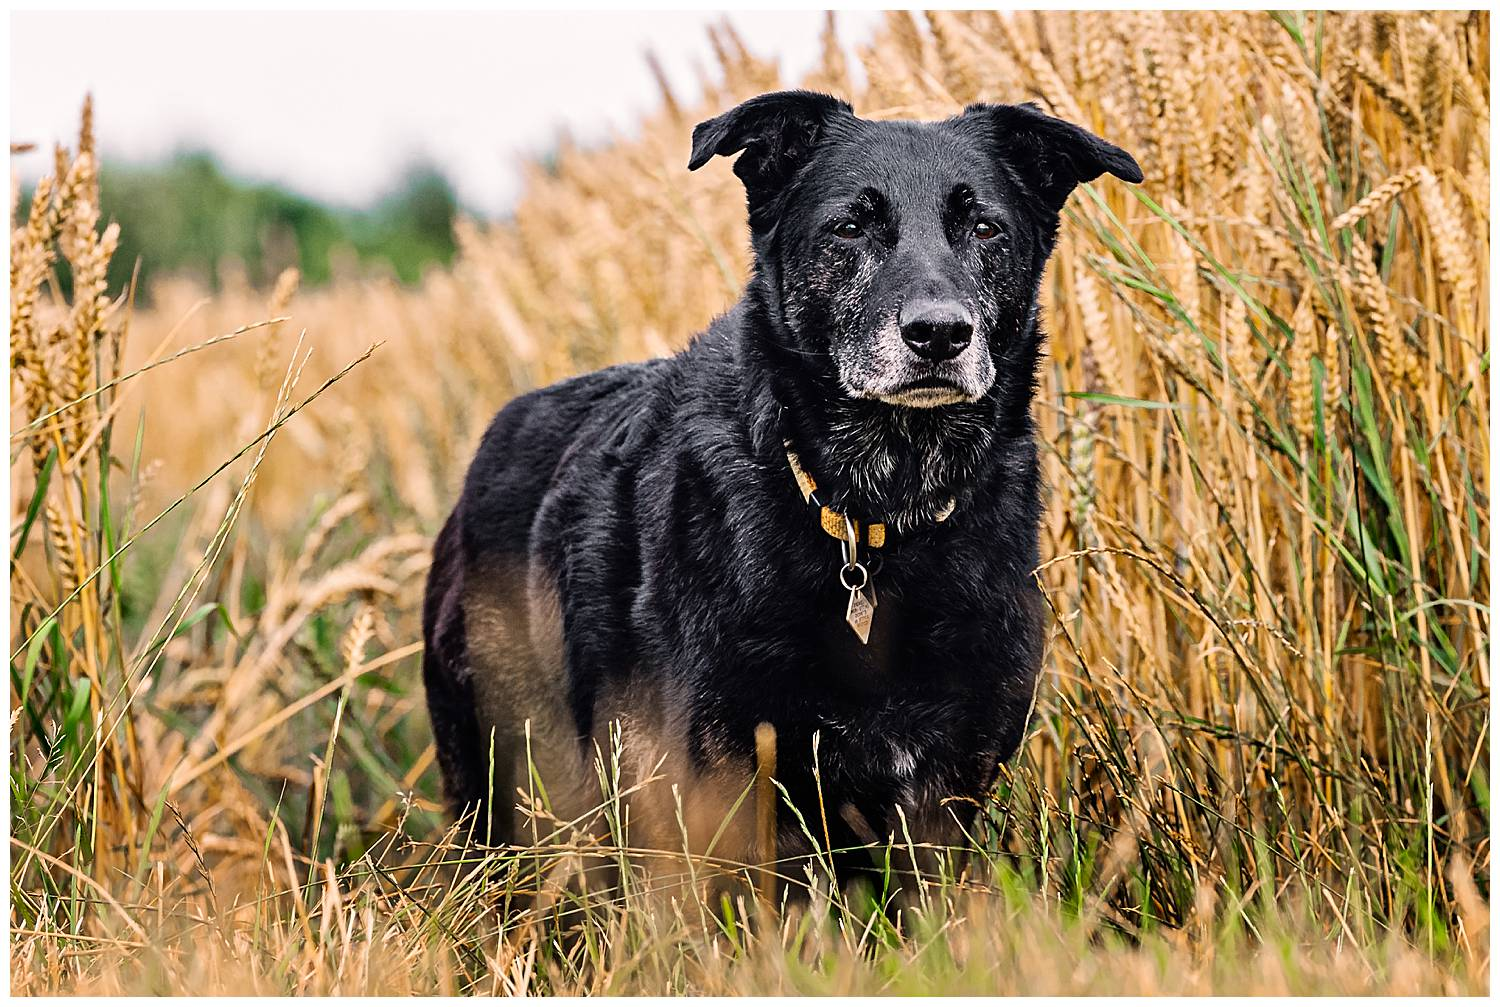 Black dog stood in a field of golden wheat